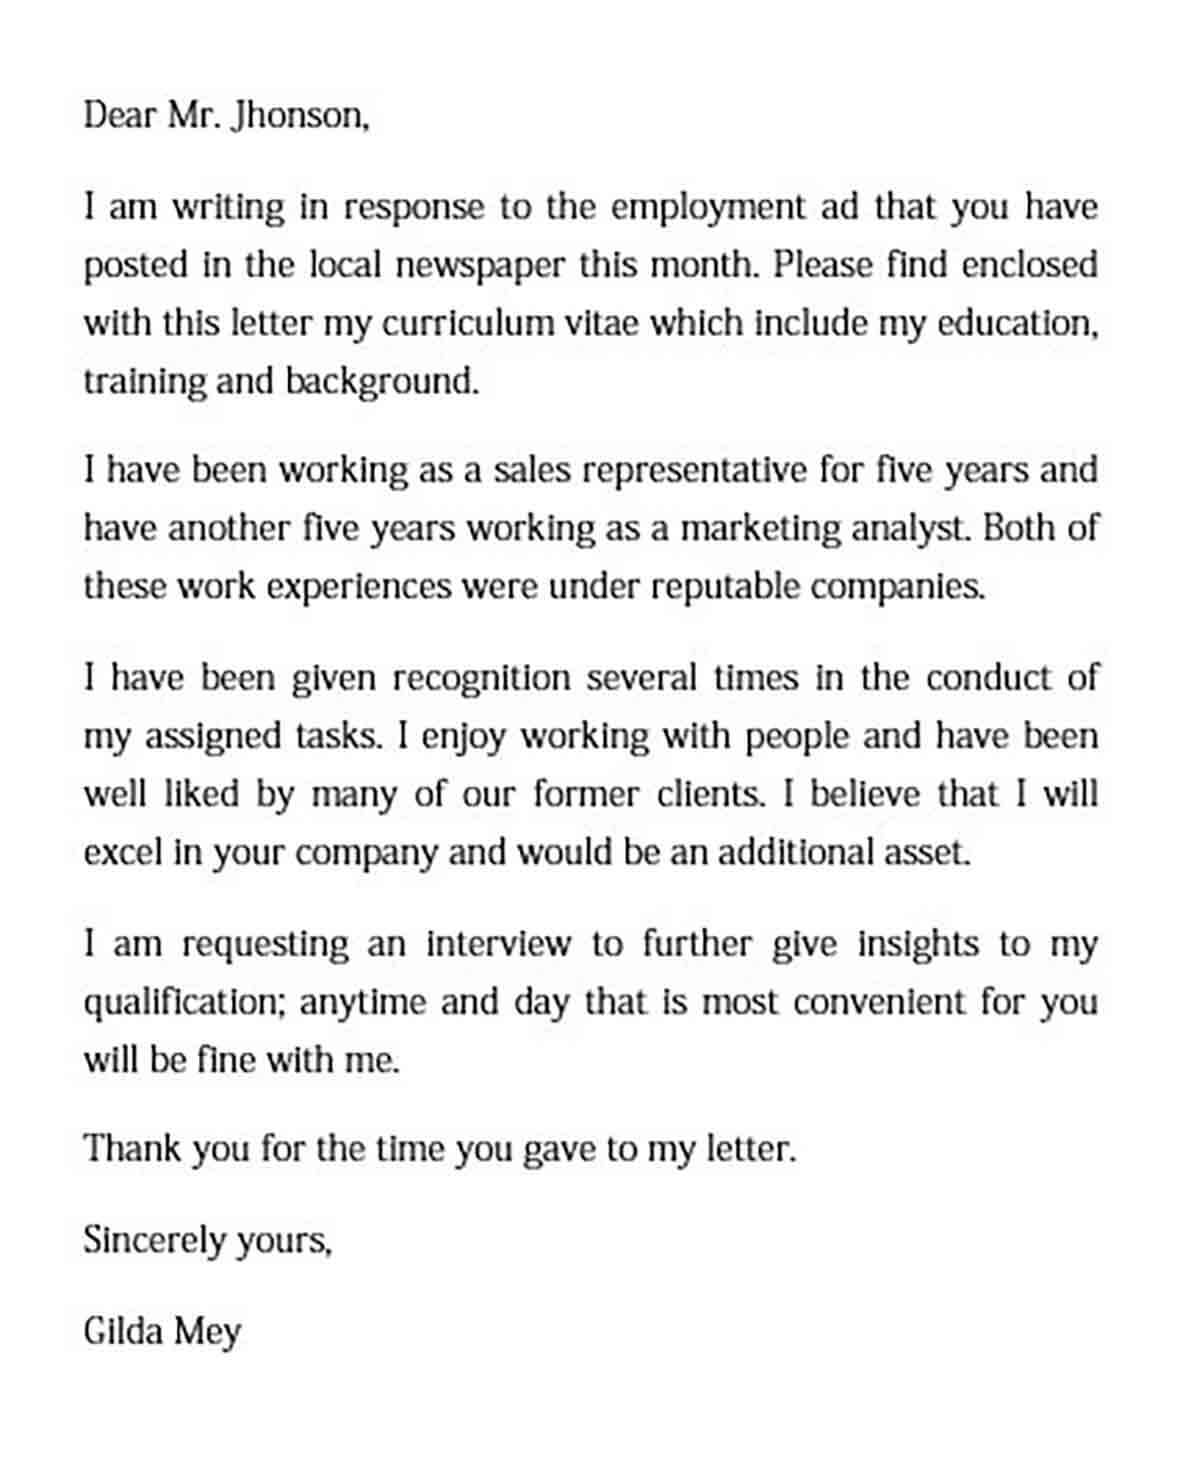 Basic Employement Cover Letter